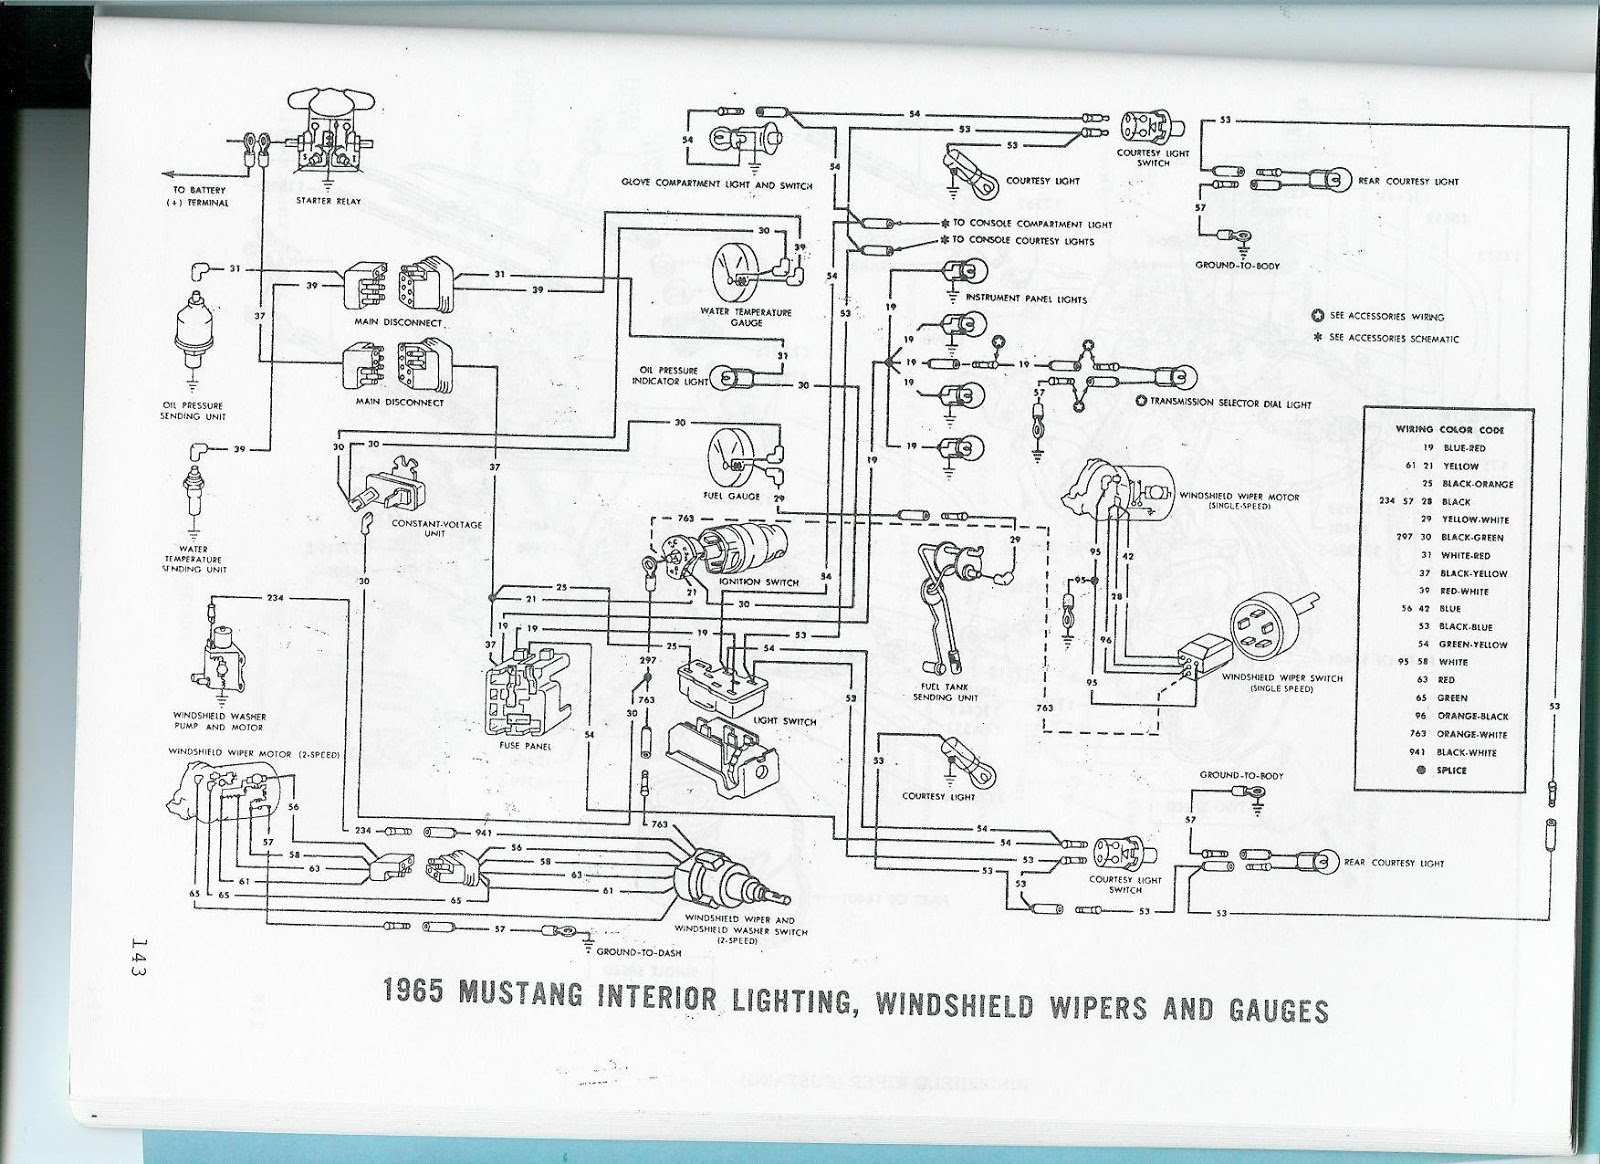 the care and feeding of ponies 1965 mustang wiring diagrams [ 1600 x 1164 Pixel ]